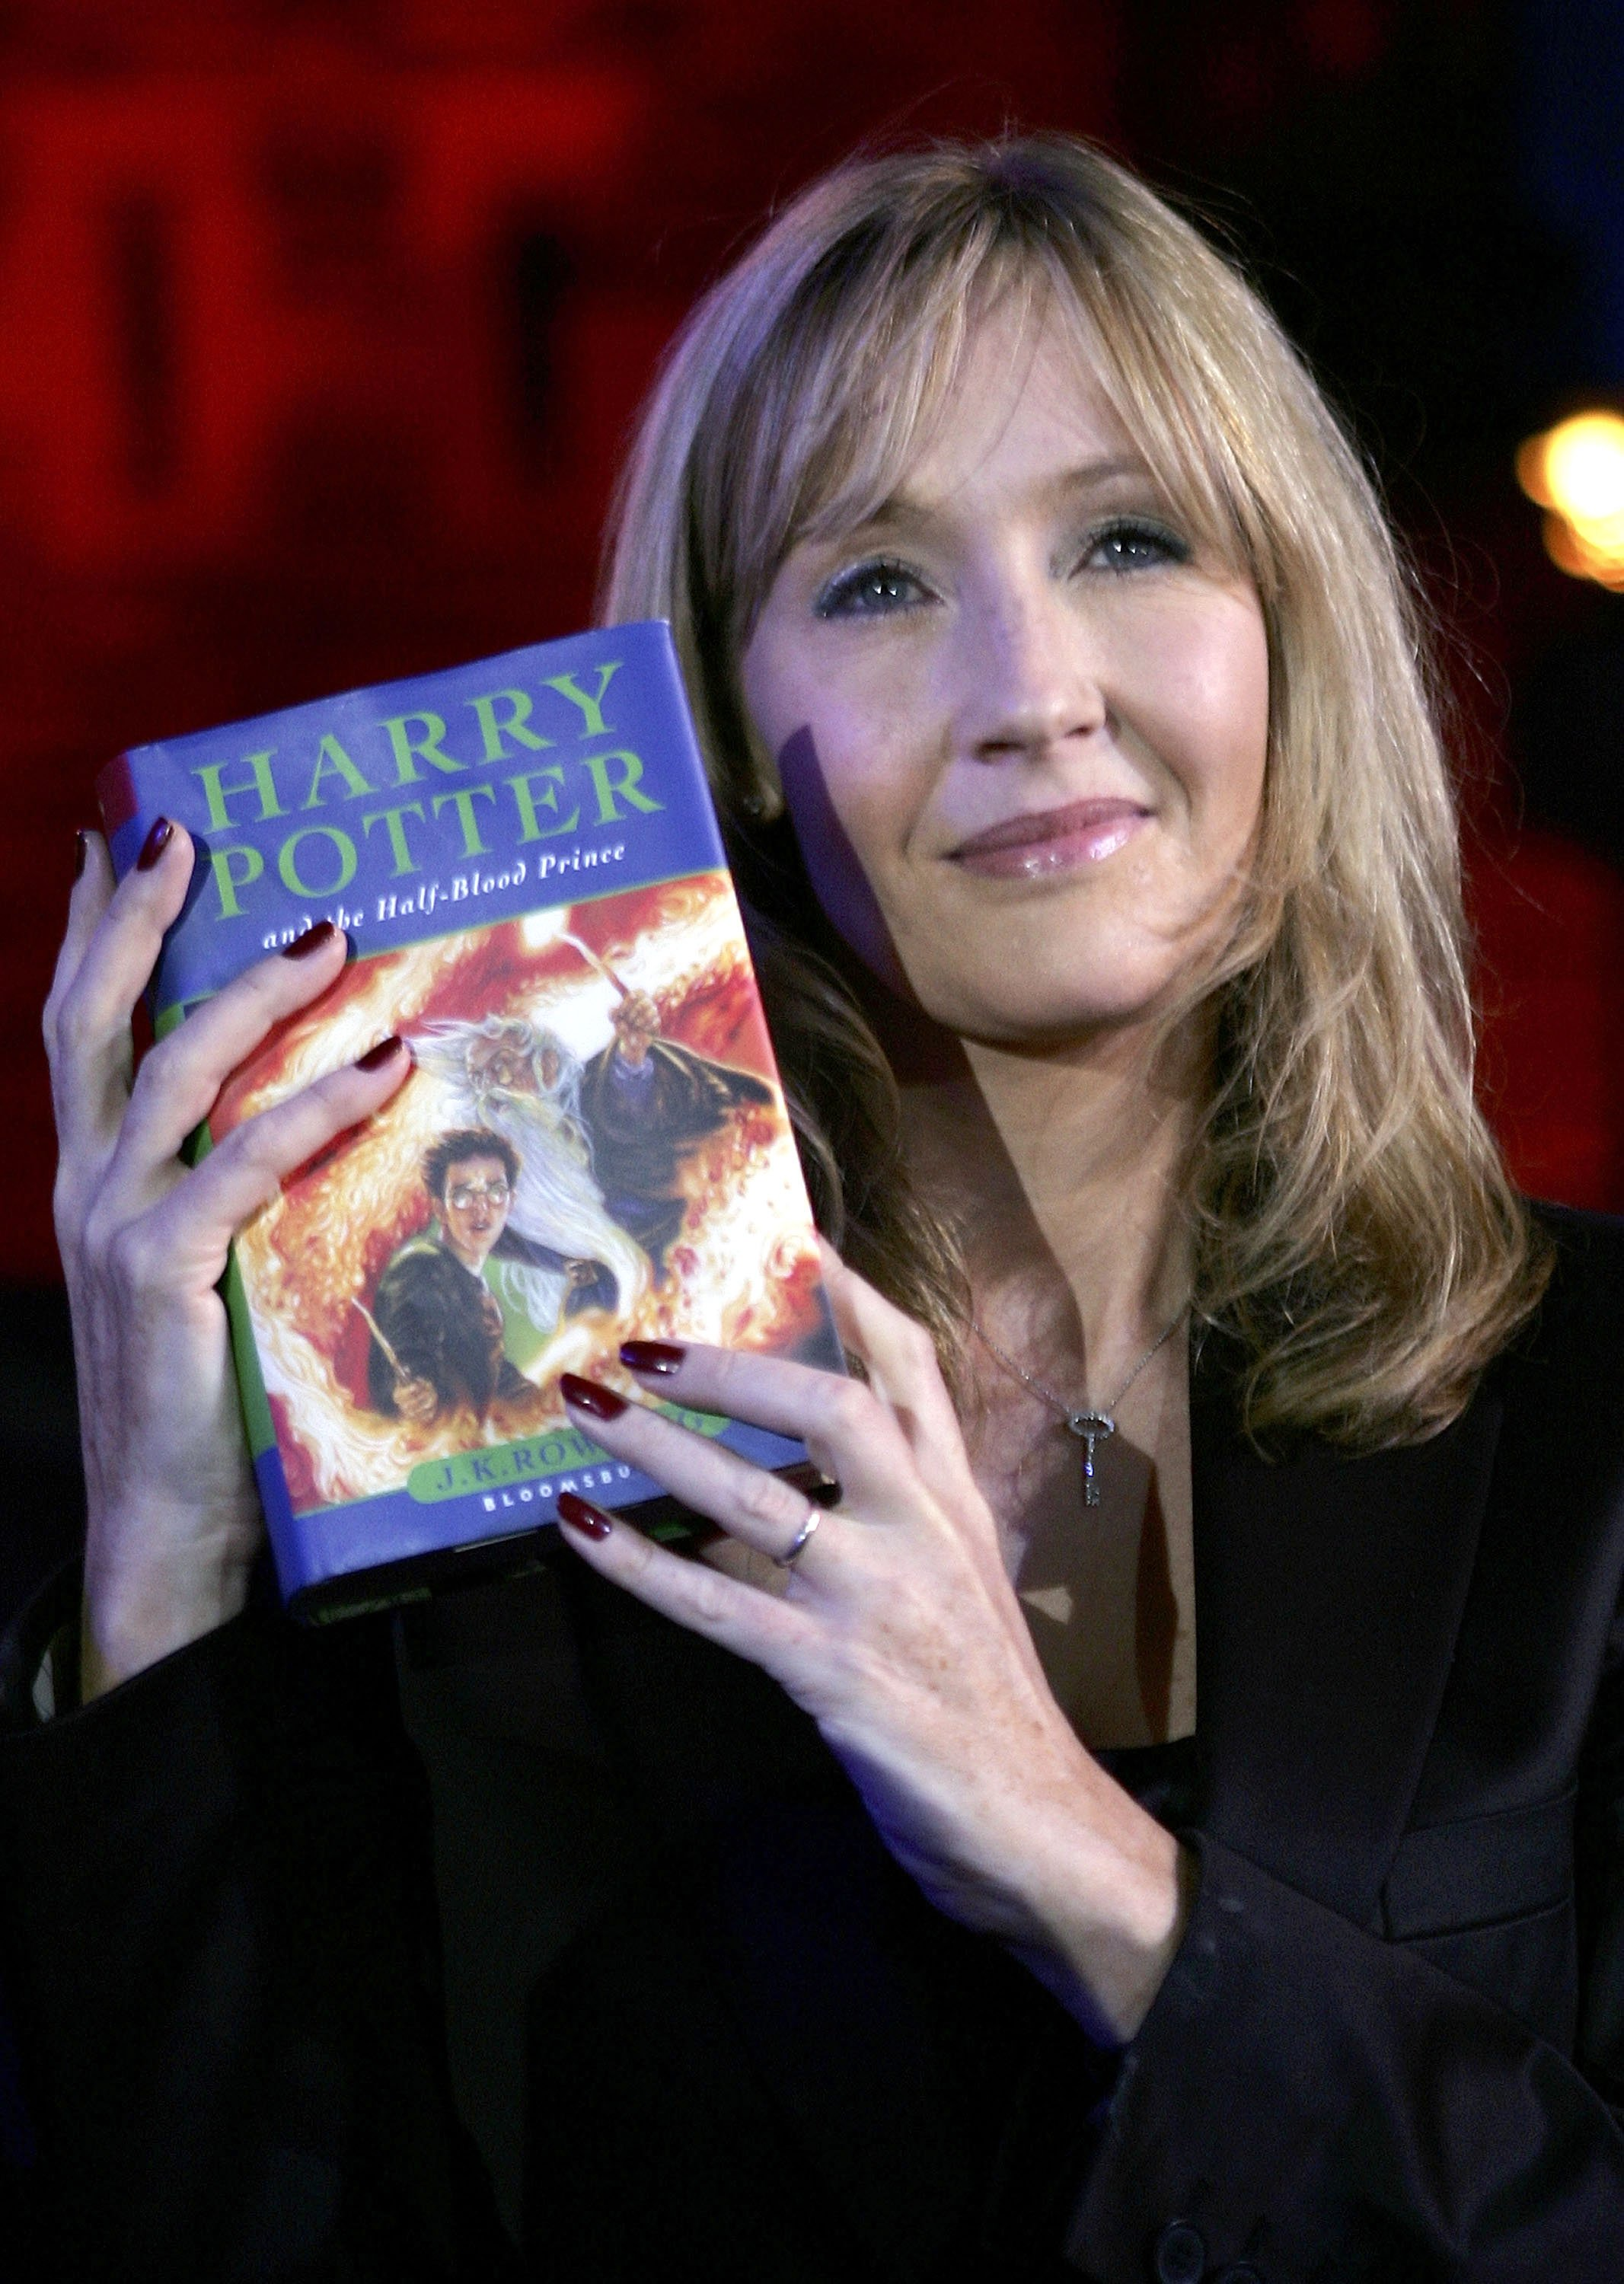 Image Source: Getty Images/ JK Rowling promoting her book, Harry Potter